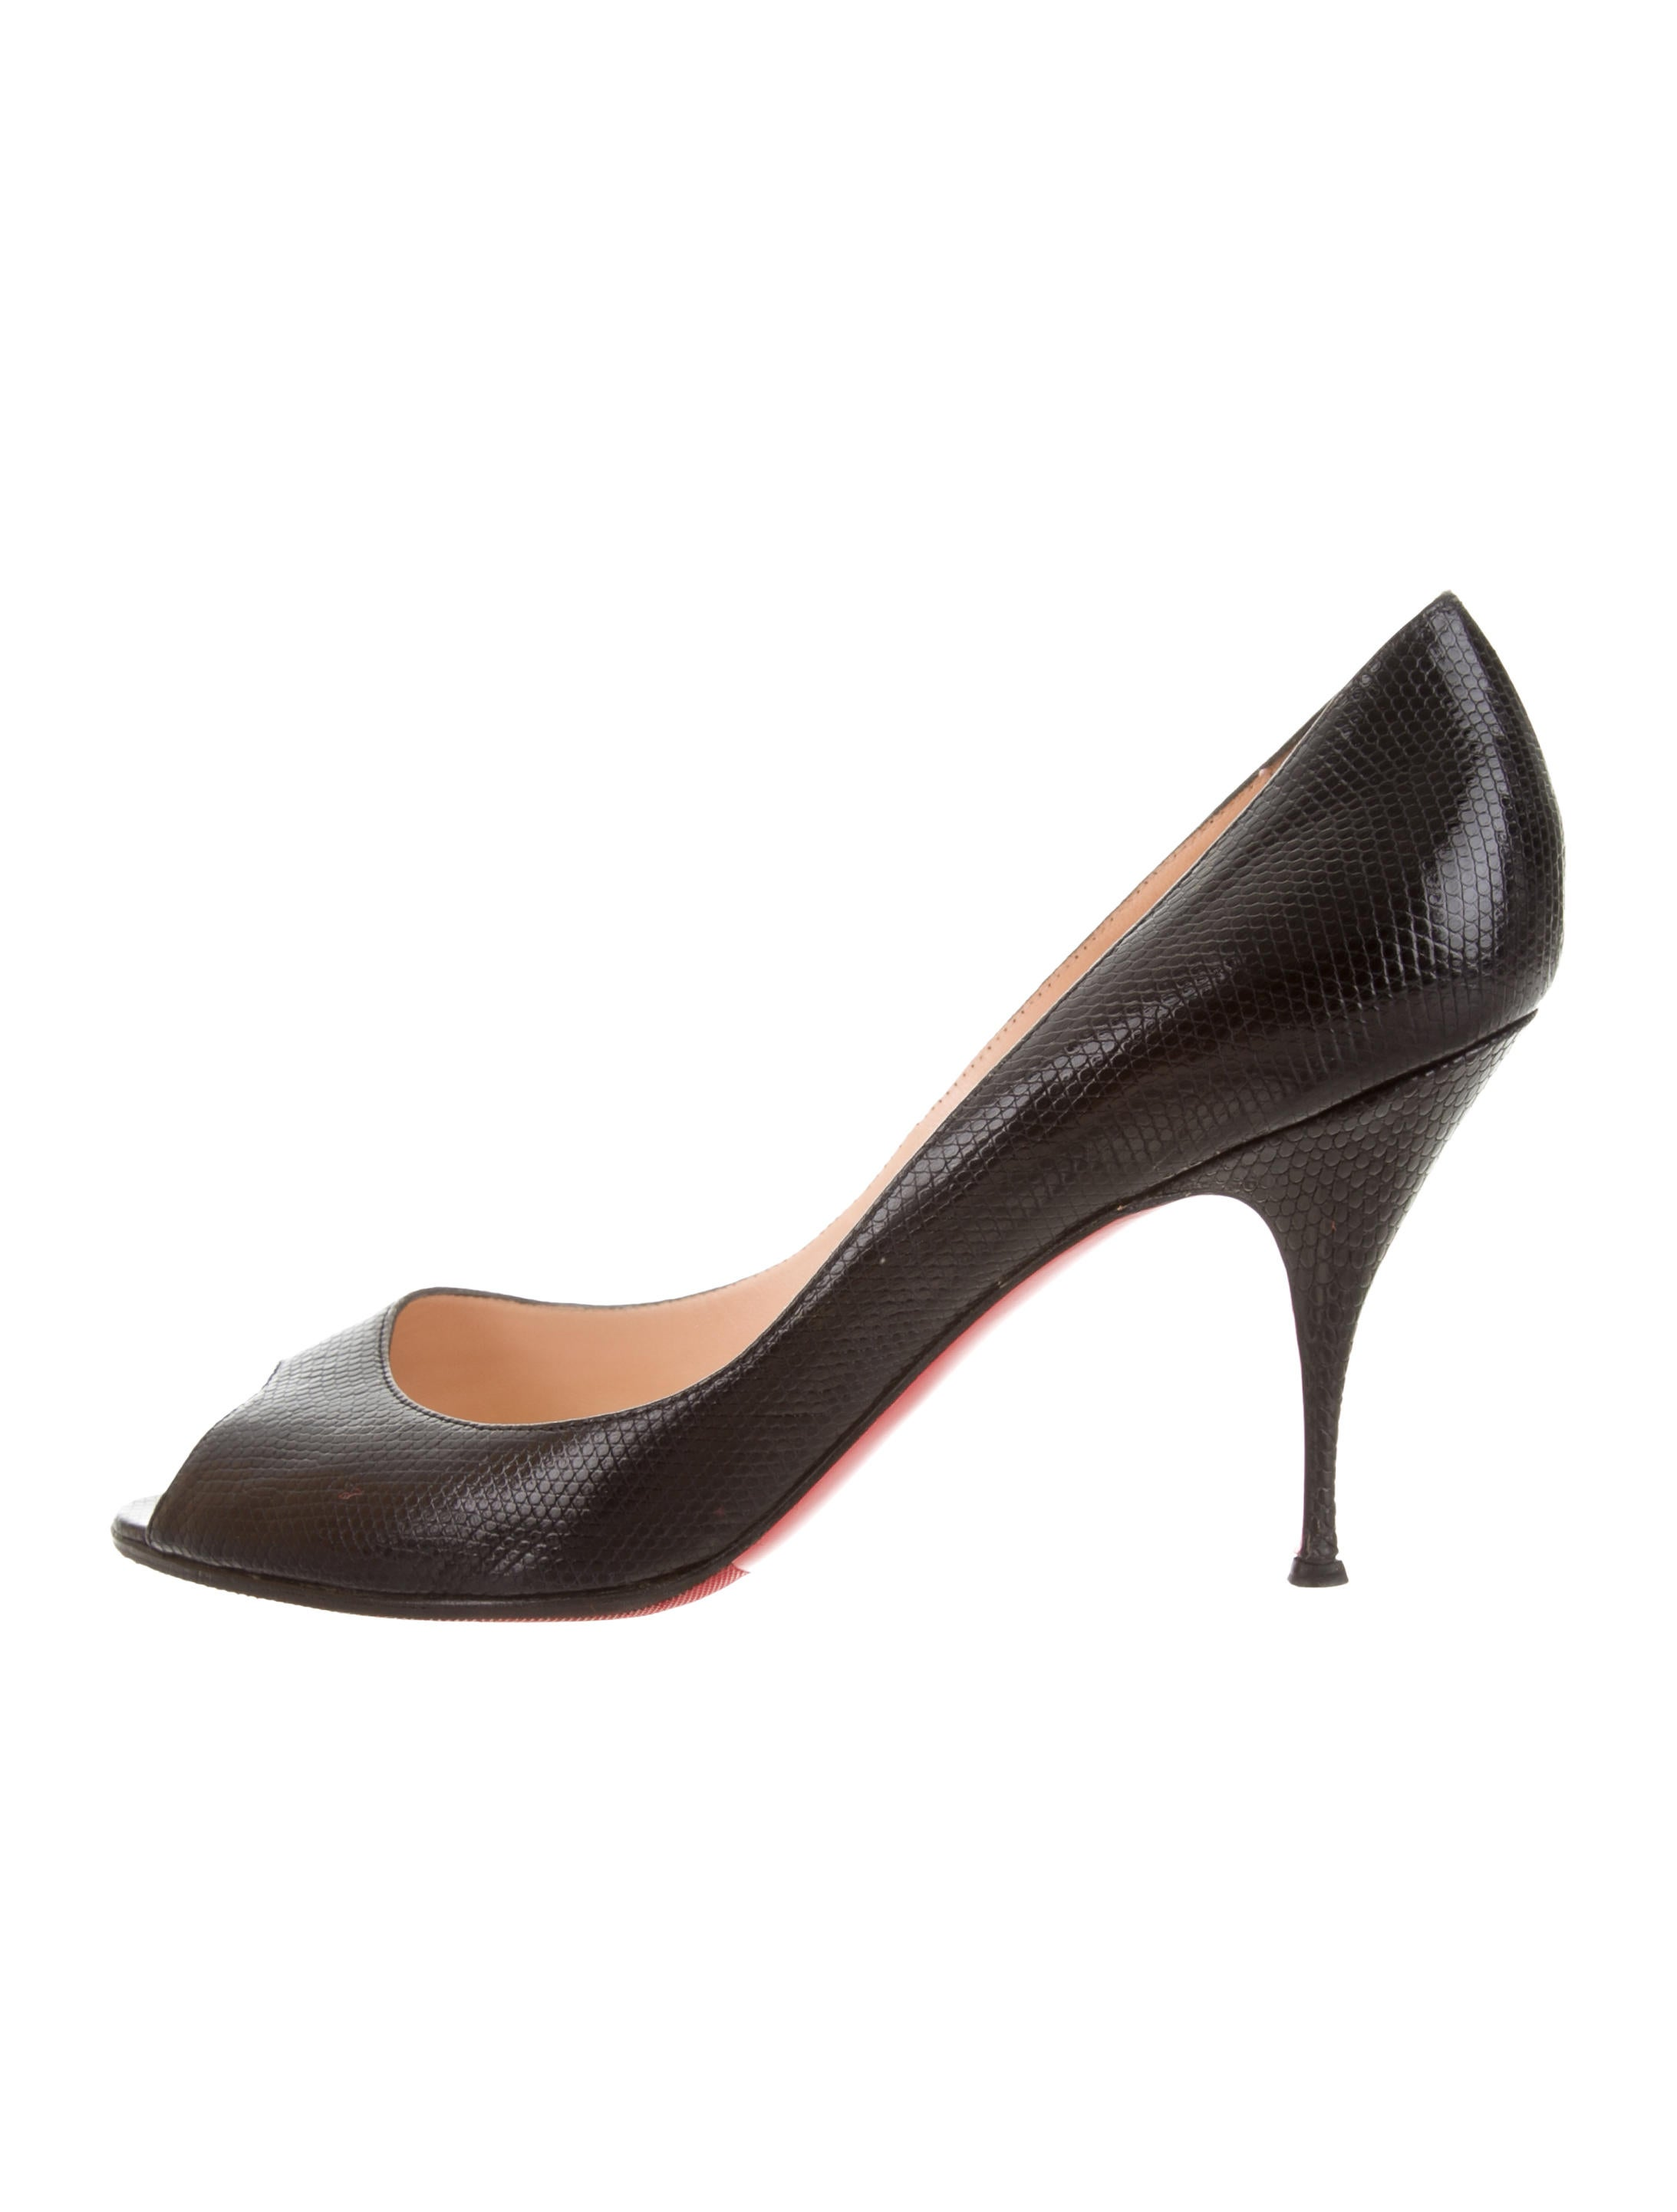 Christian Louboutin YoYo Lizard 85 Pumps clearance online sale from china online cheap online cheap real authentic v9enc1w3